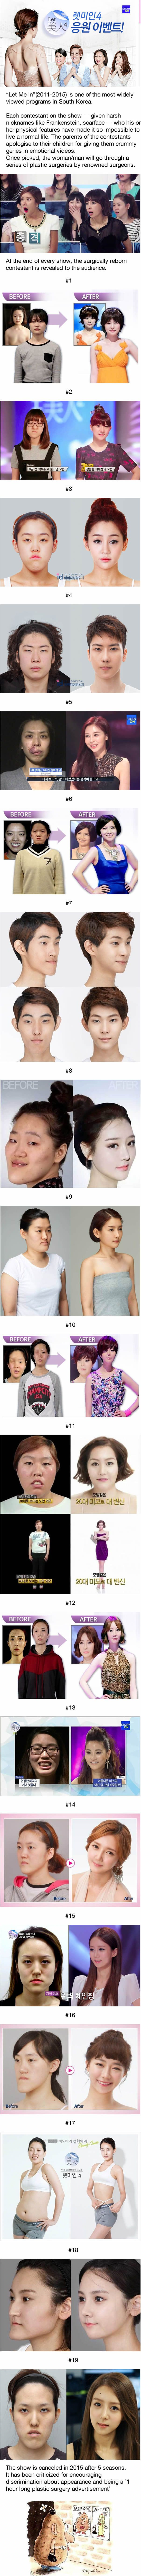 best ideas about plastic surgery show plastic 19 before and after photos from korean plastic surgery makeover show